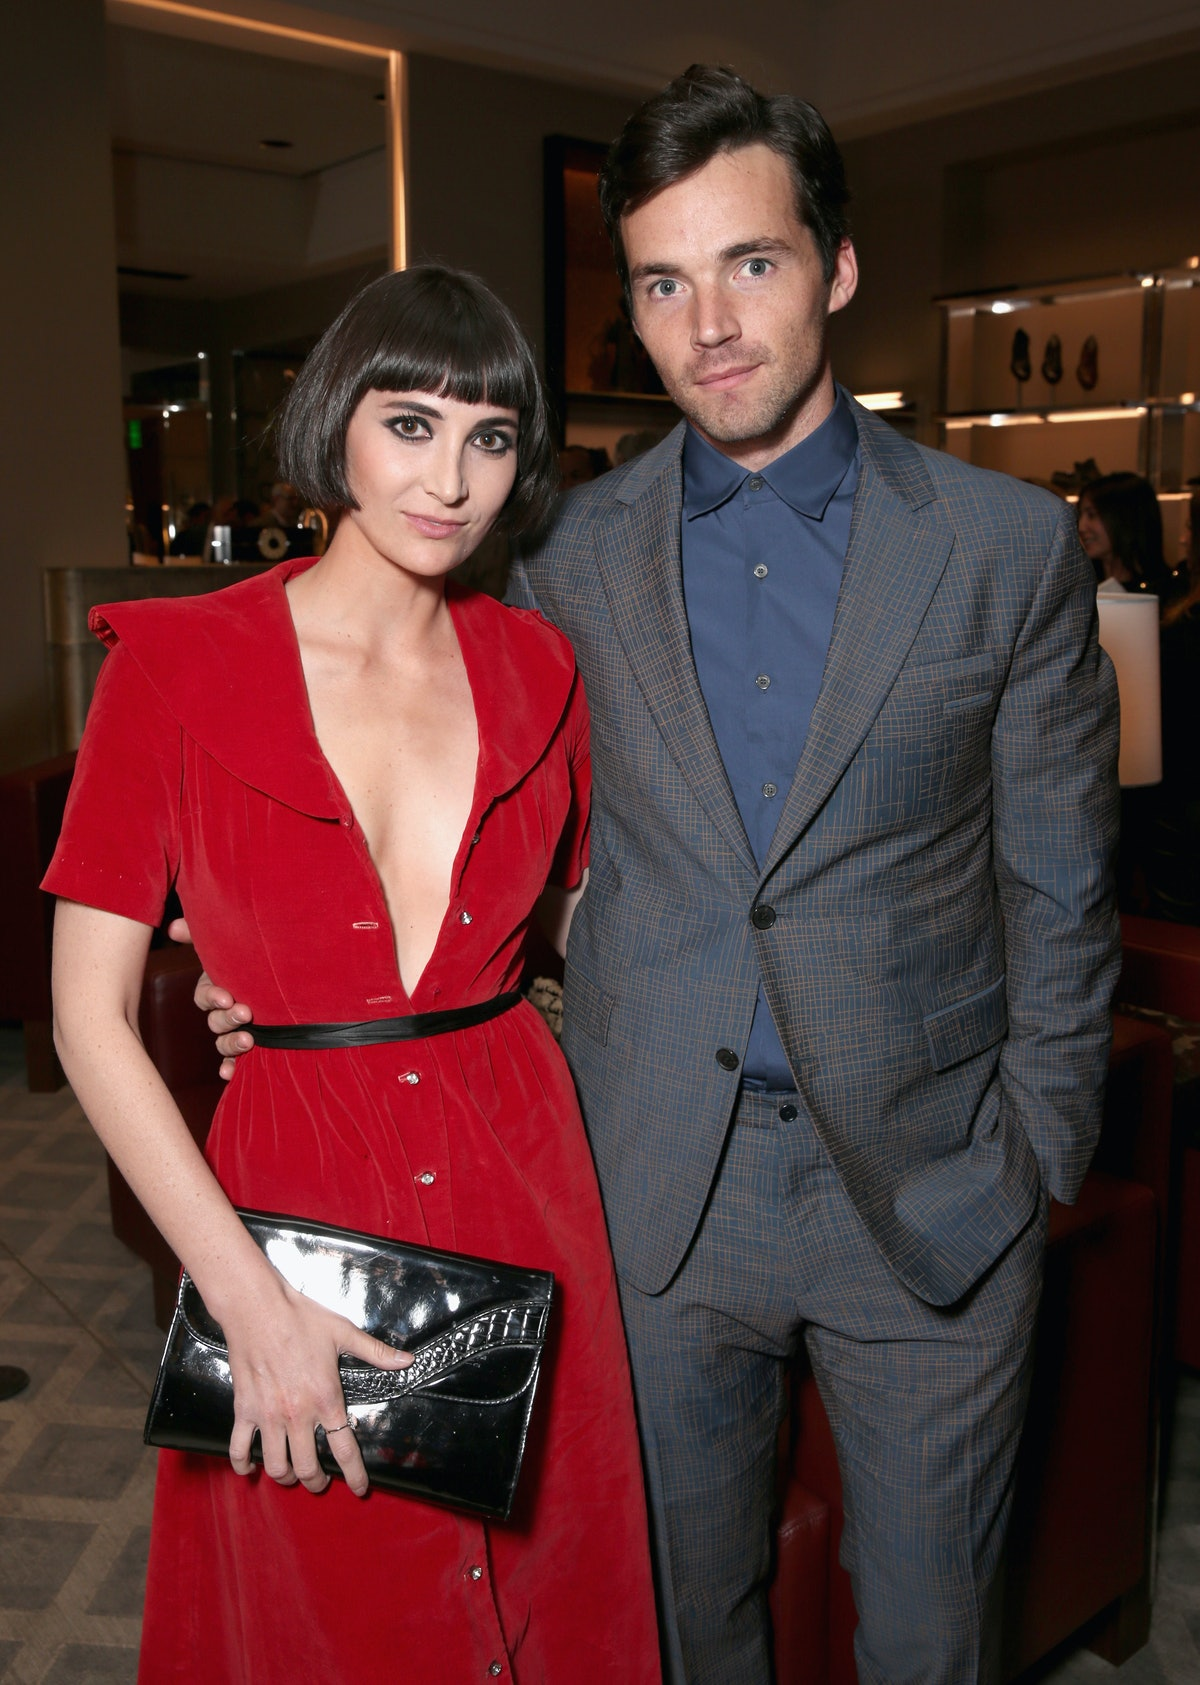 'Pretty Little Liars' star Ian Harding reportedly married Sophie Hart two years ago.